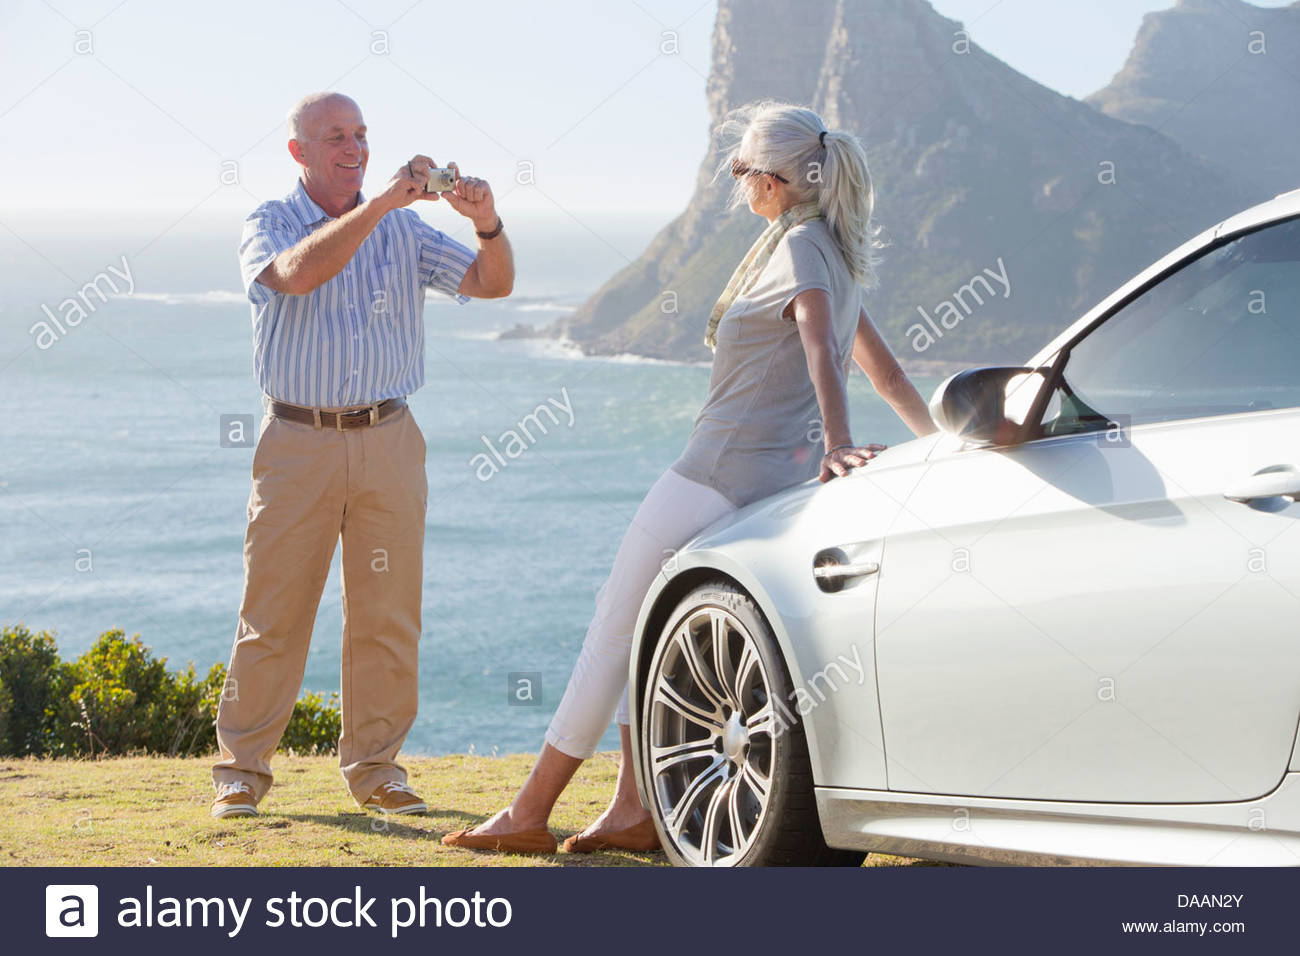 Man photographing woman leaning against car near ocean - Stock Image